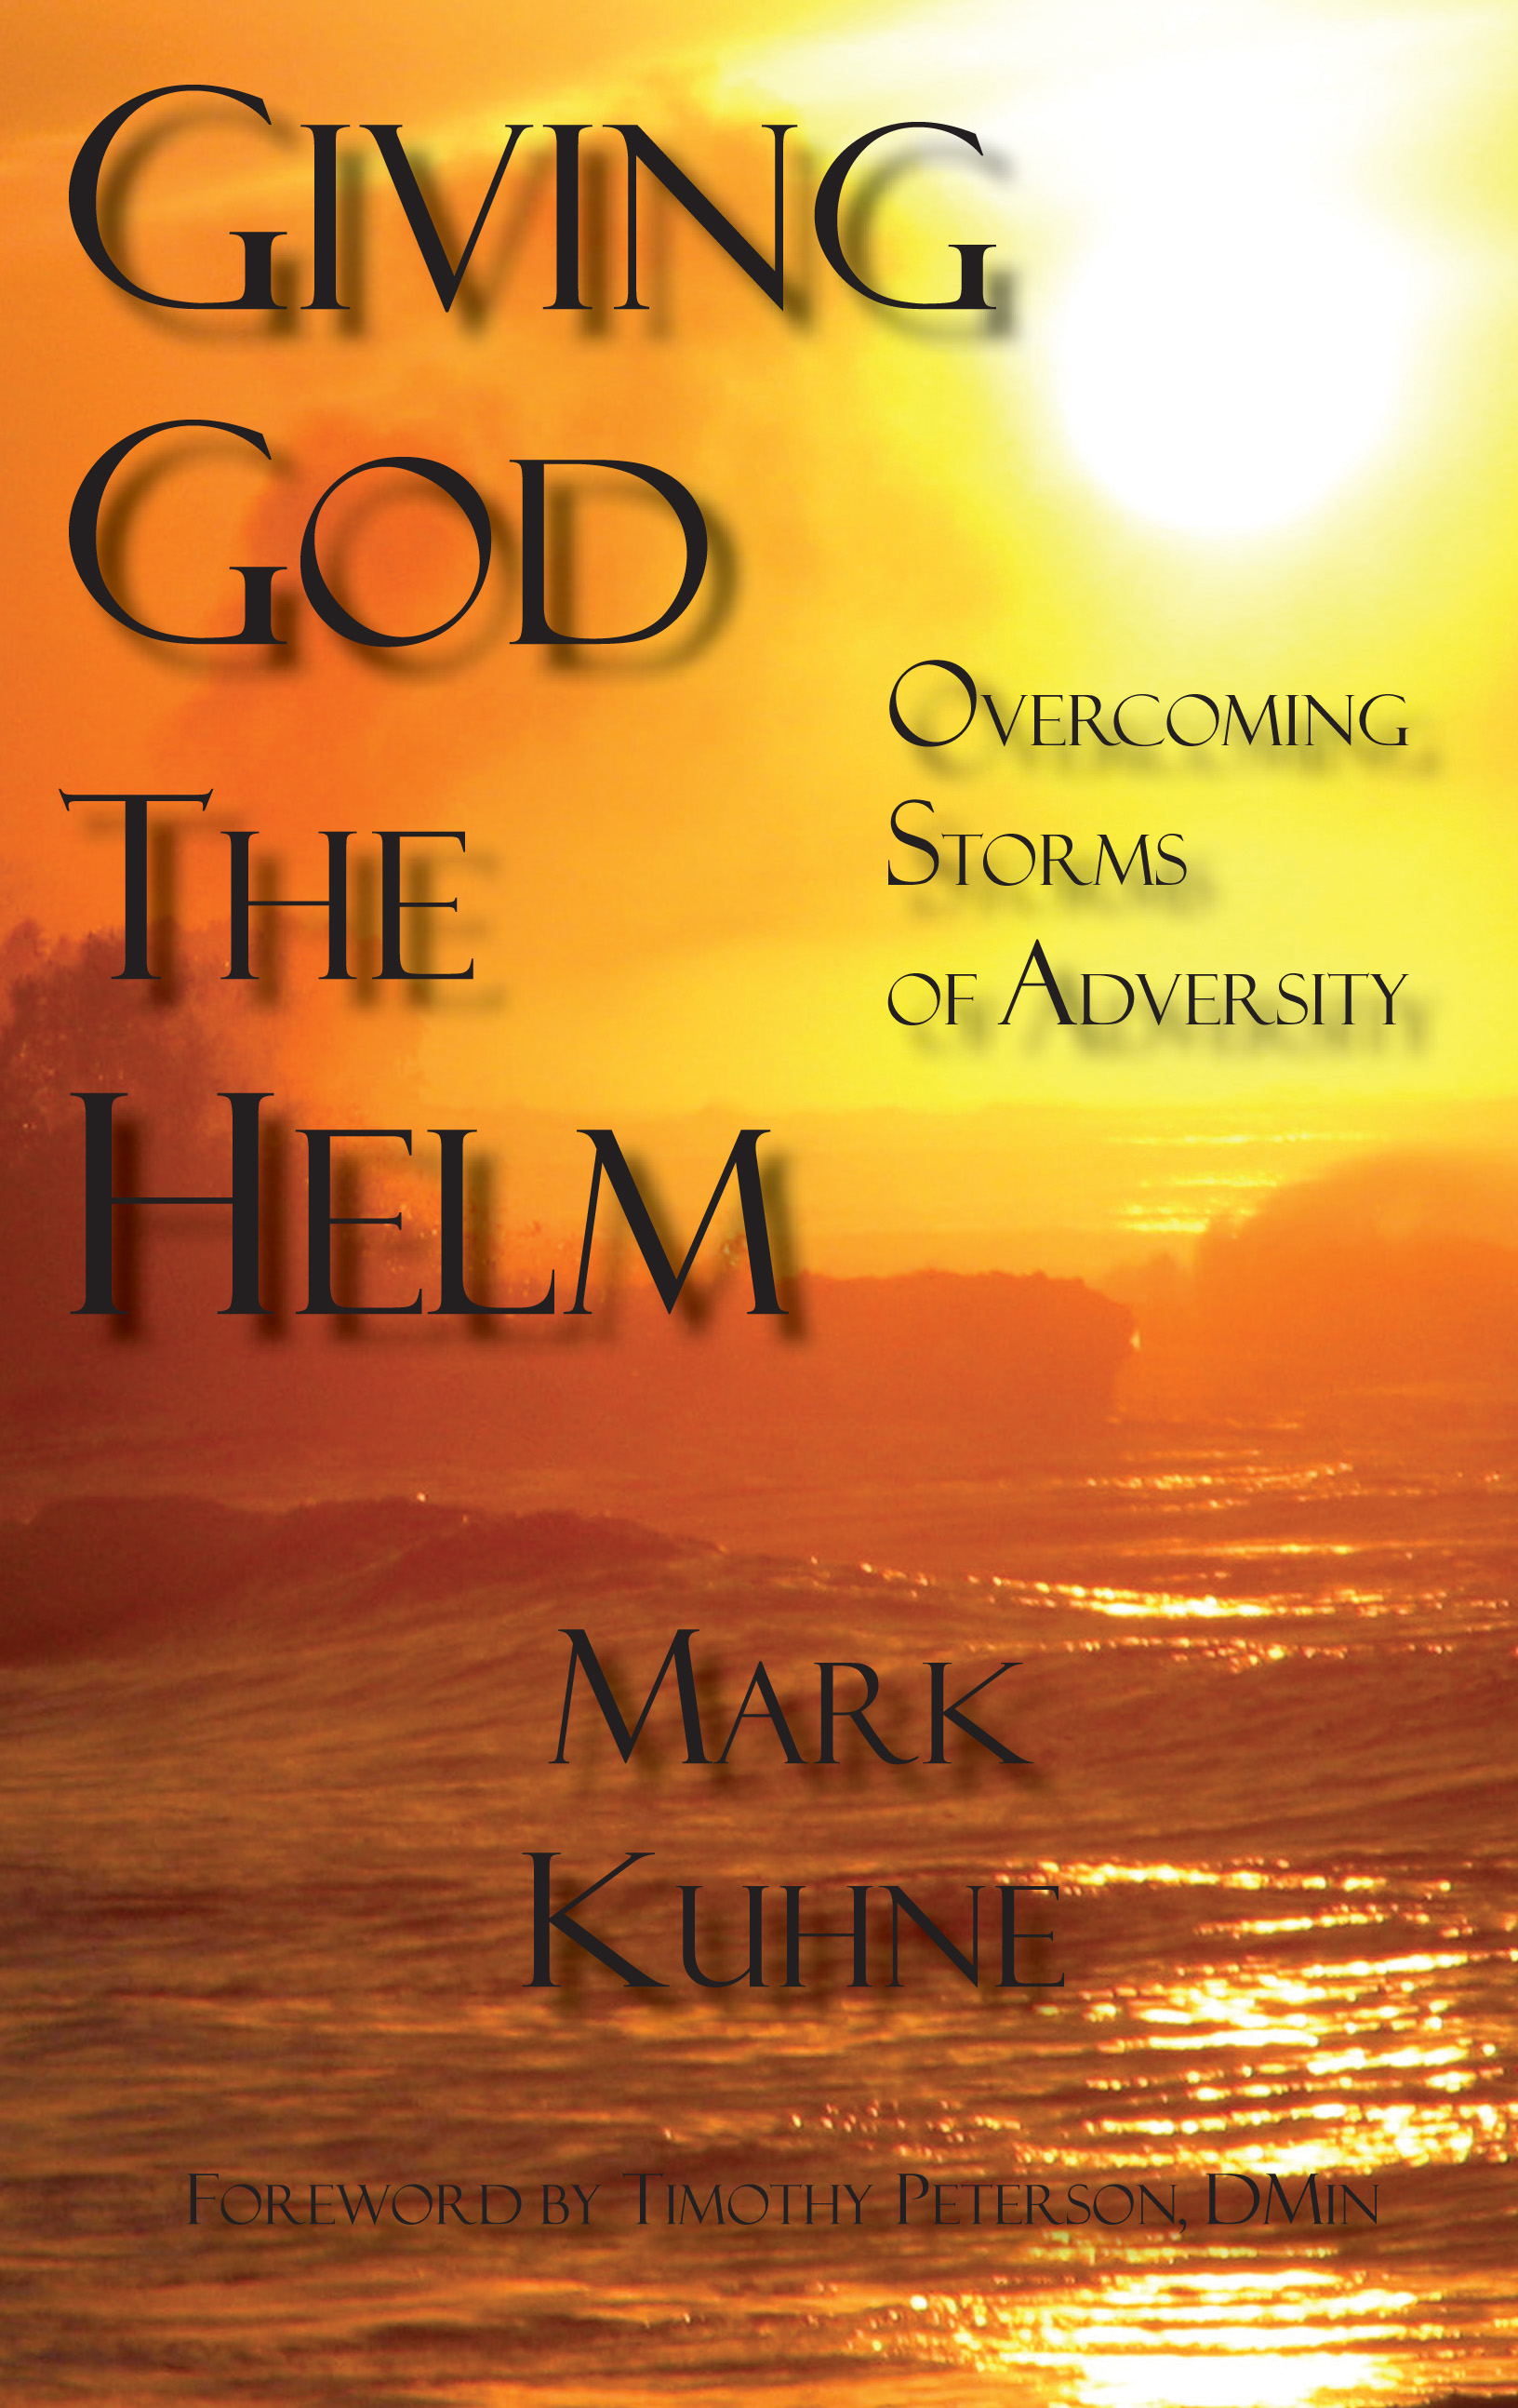 Giving God The Helm Overcoming Storms Of Adversity